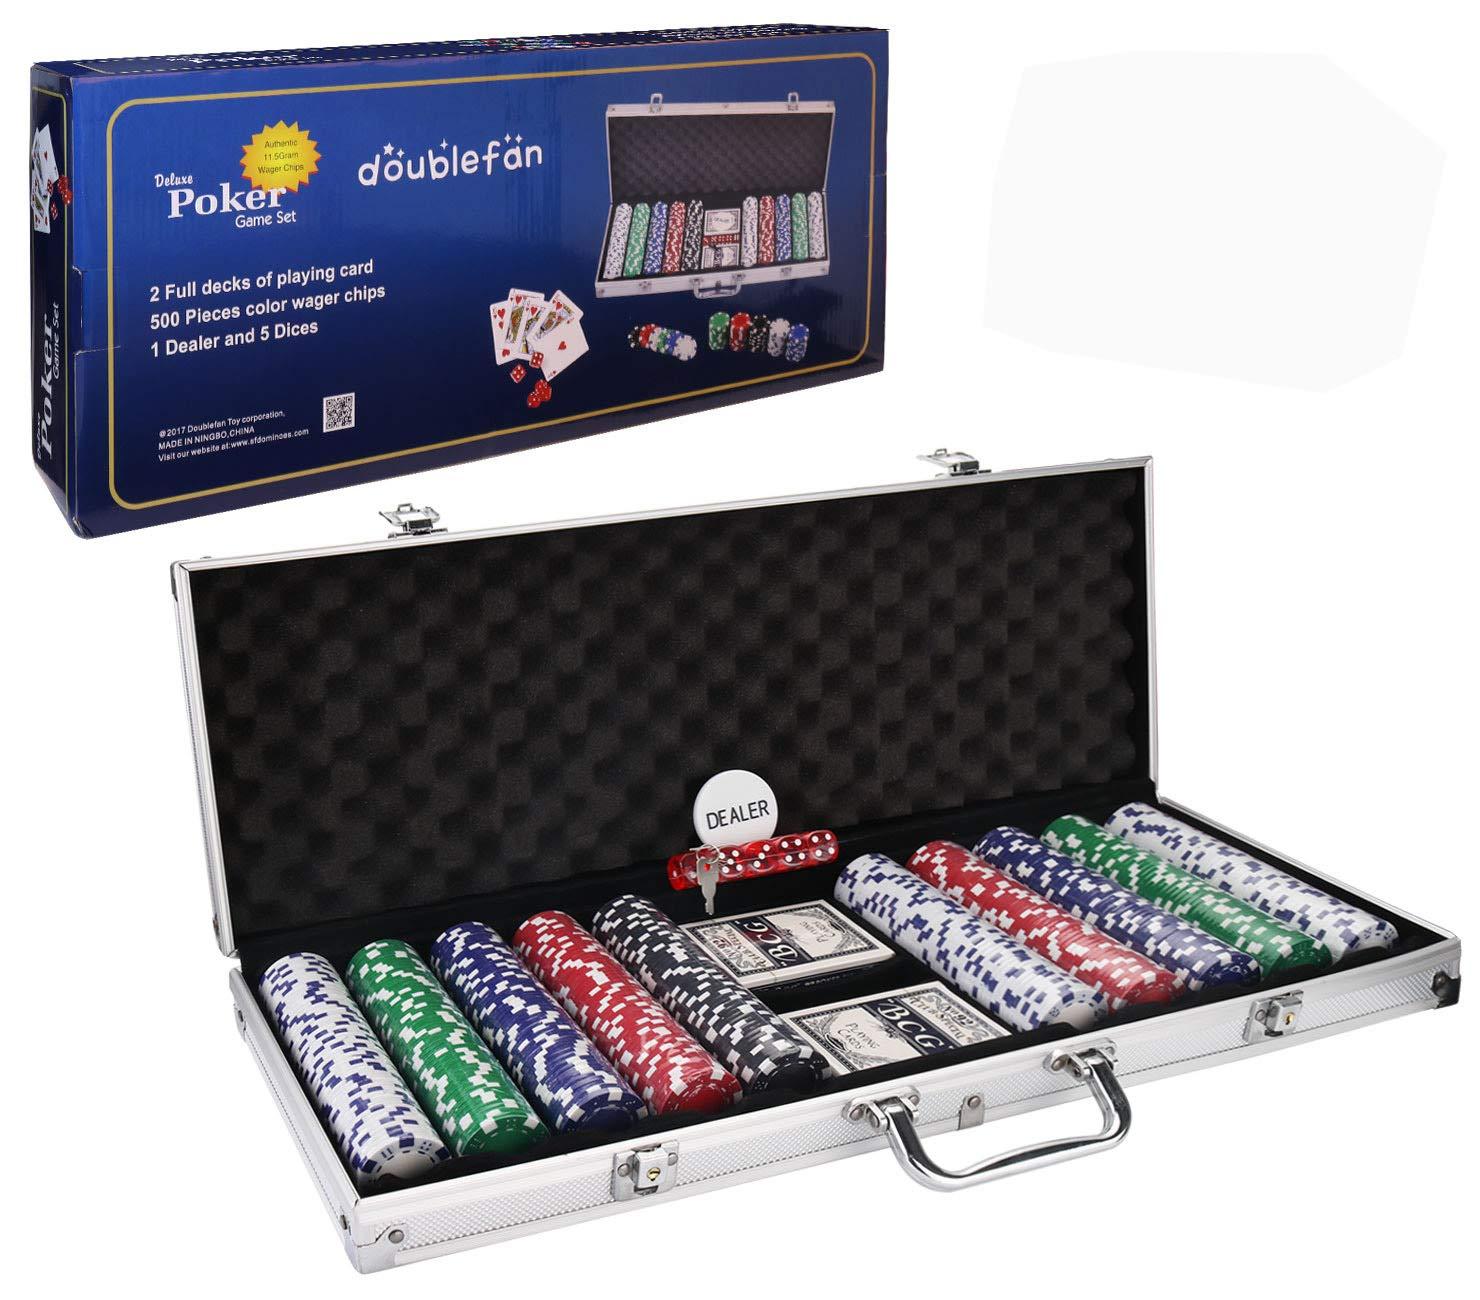 Doublefan Poker Set, 500 PCS Clay Quality Poker Chips Blackjack Chips with Aluminum Case, Suit for 4-9 Players by DF-Chip-500 (Image #1)